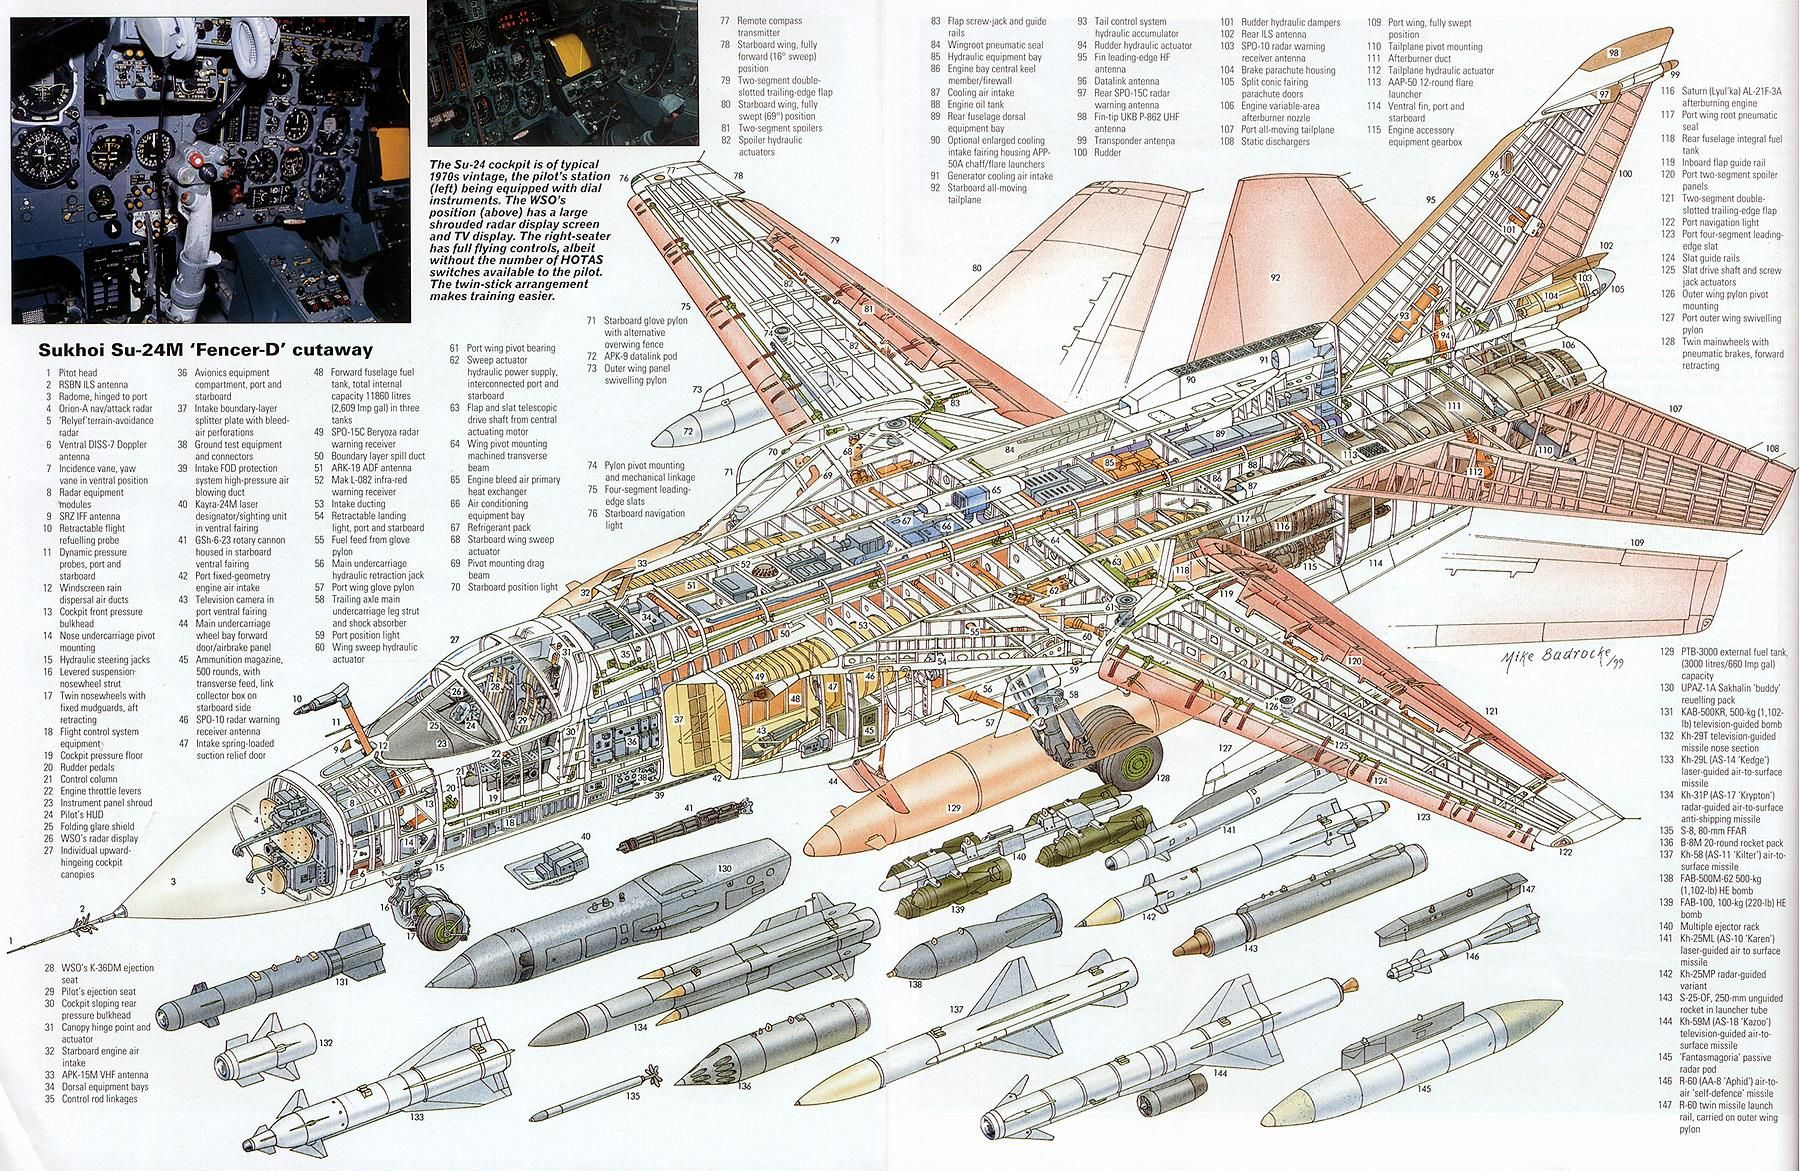 F18 Jet Engine Diagram Trusted Wiring Diagrams Hydraulic Power Pack Fighter Detailed Panel Library Of U2022 F 18 Aircraft Fuel Cavity